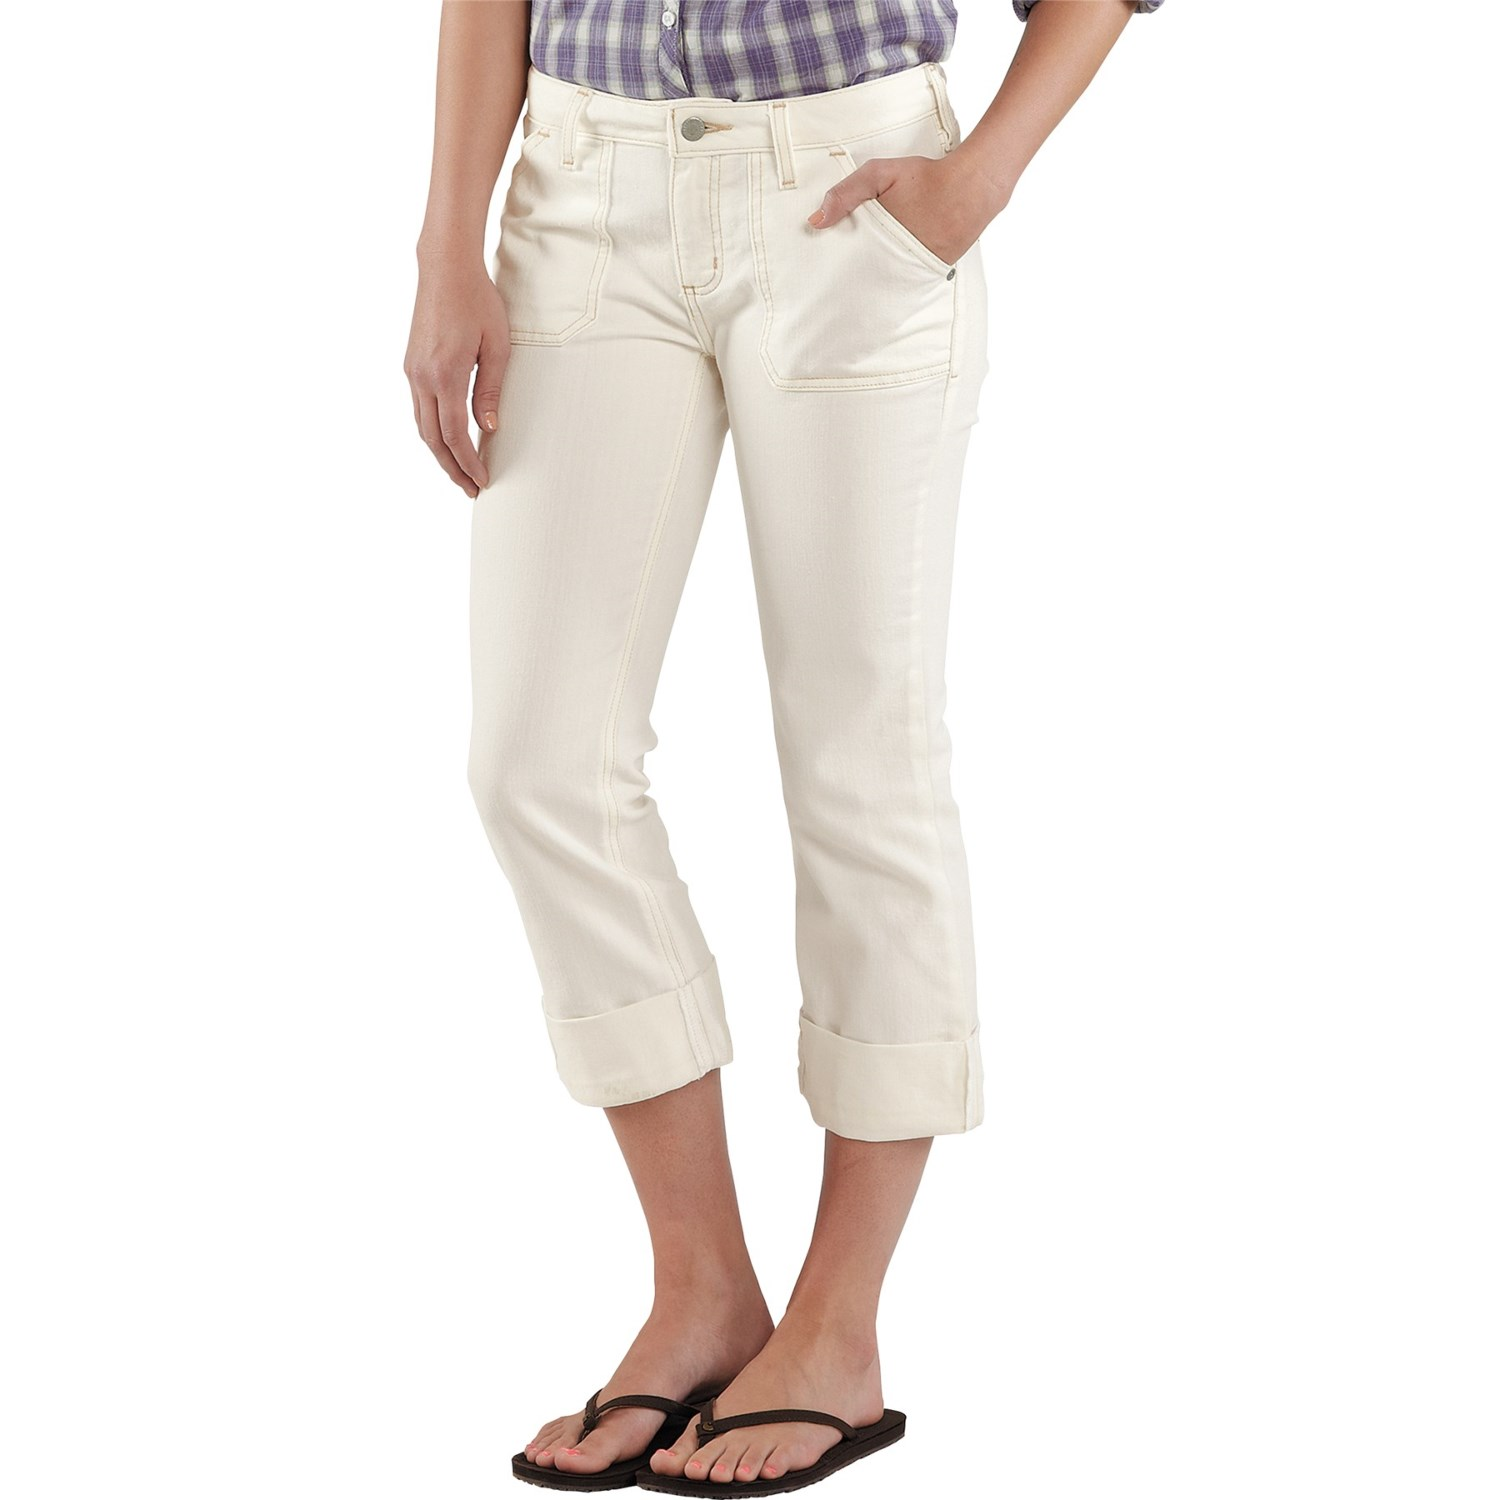 Curvy Fit Capri Pants - Pant Row